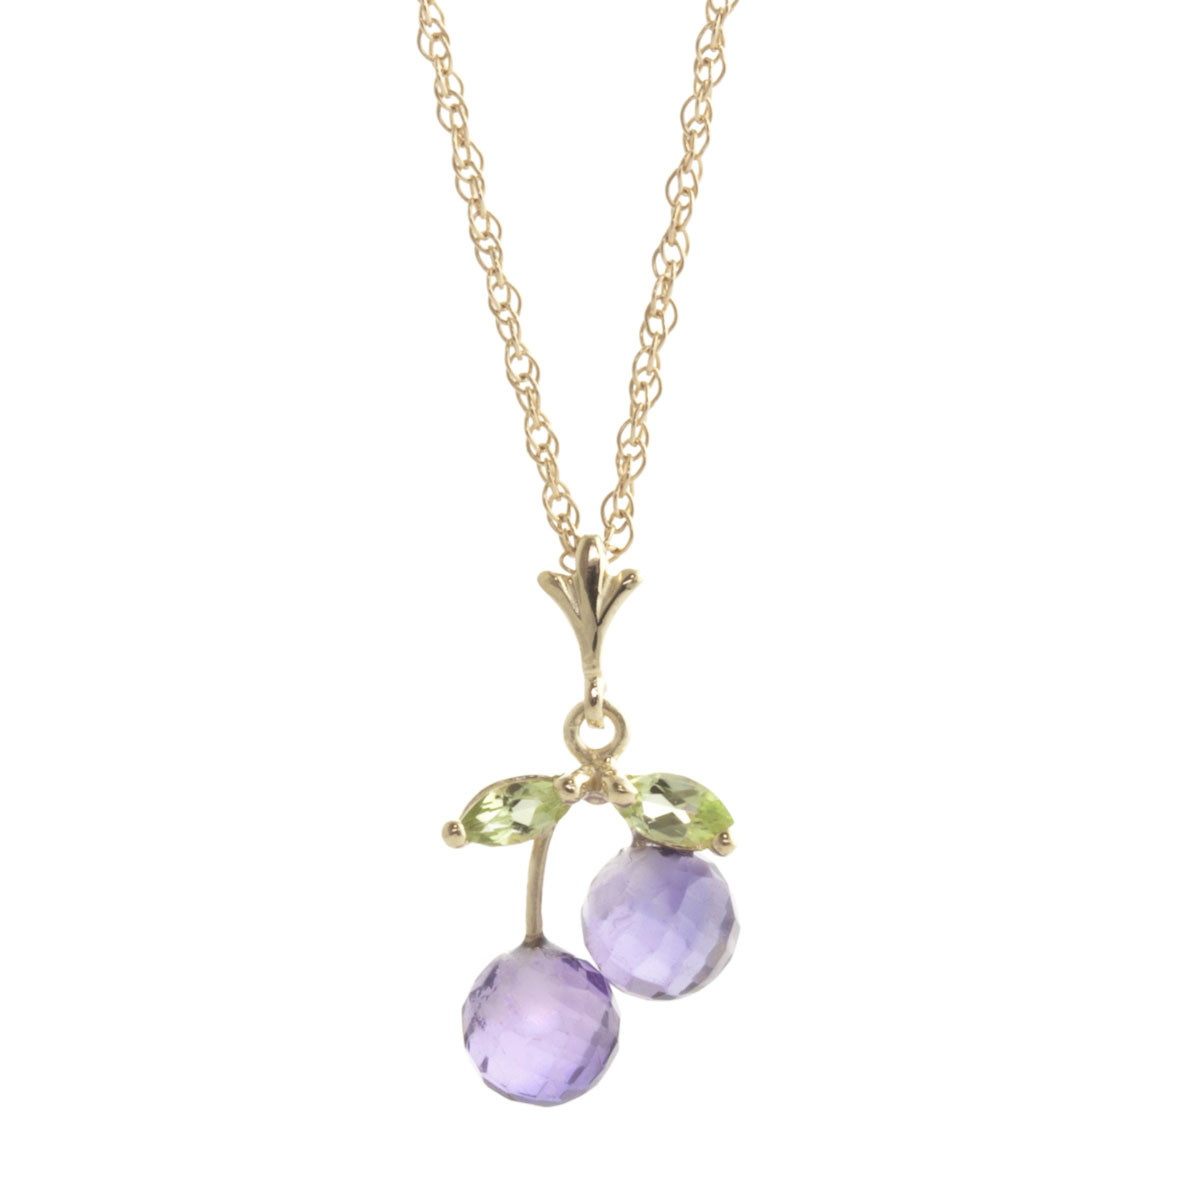 Amethyst & Peridot Cherry Drop Pendant Necklace in 9ct Gold